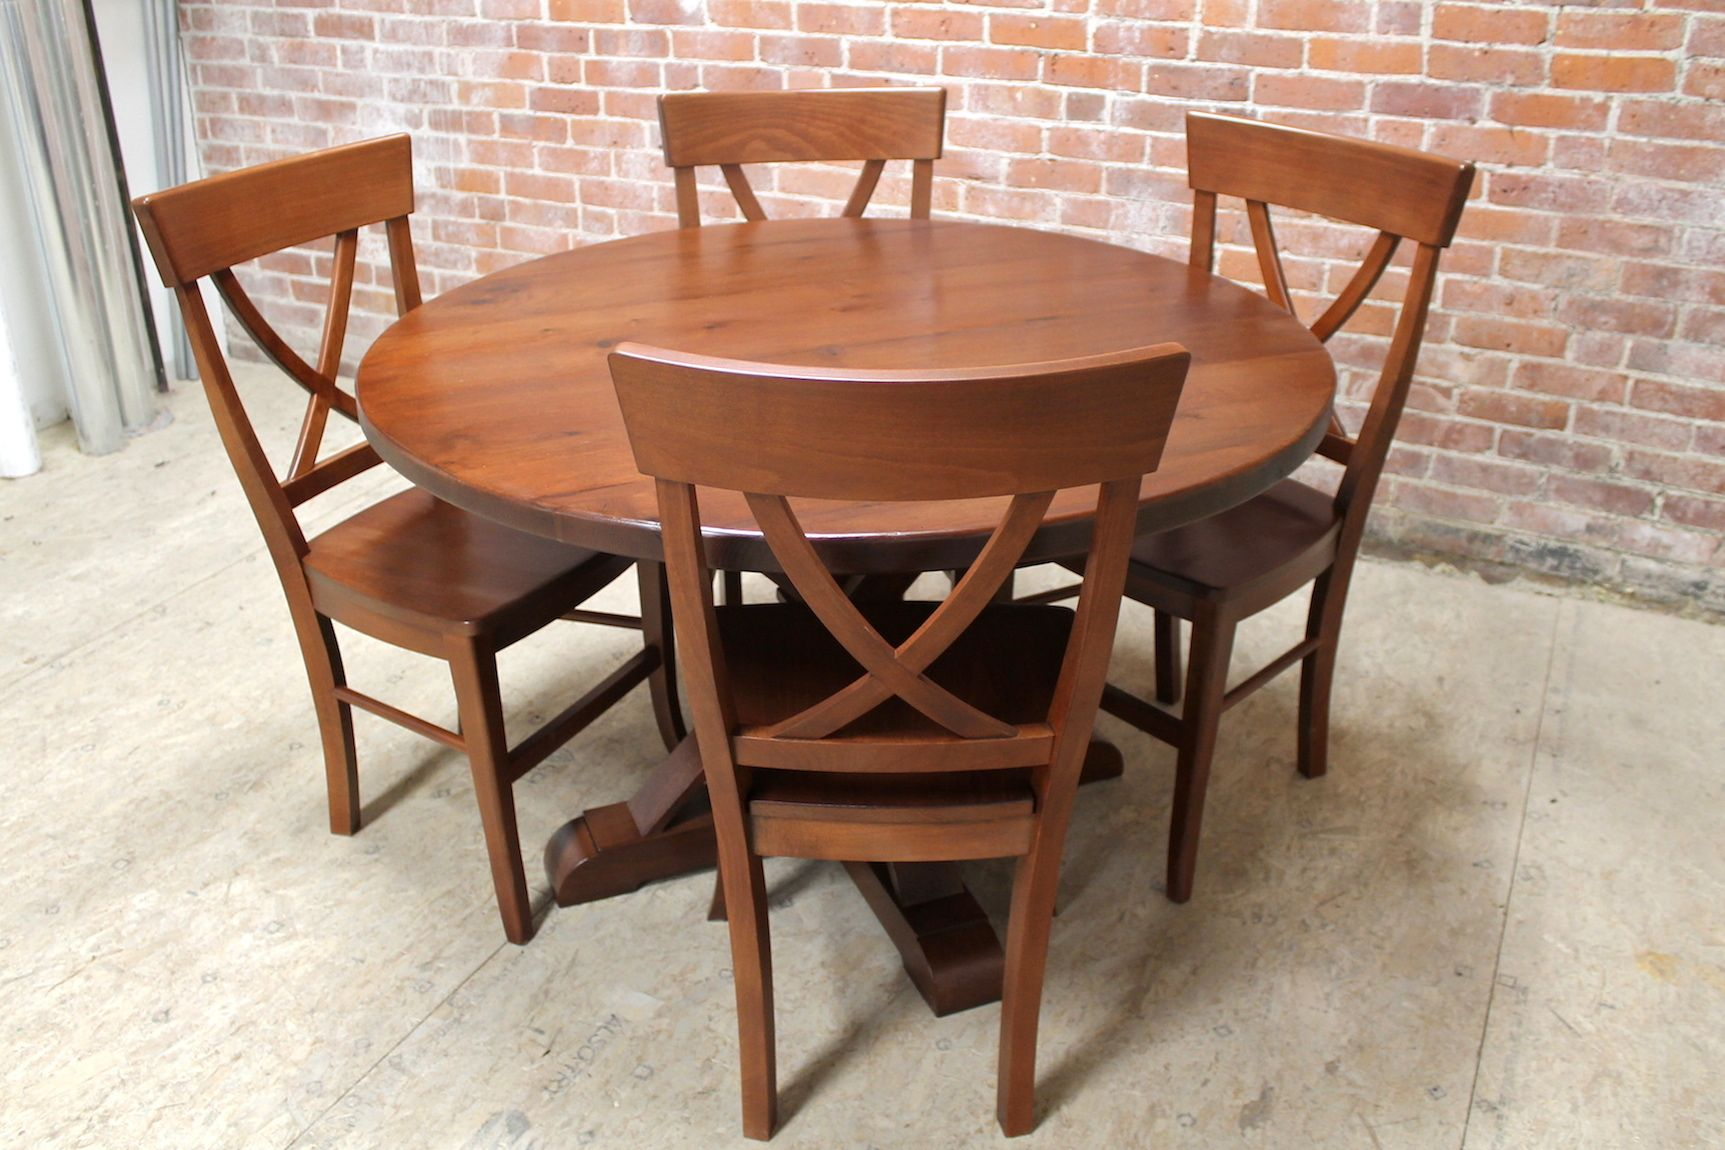 Beautiful Custom Made Barn Wood Farm Tables | By ECustomFinishes.com | Built to order for your dream home